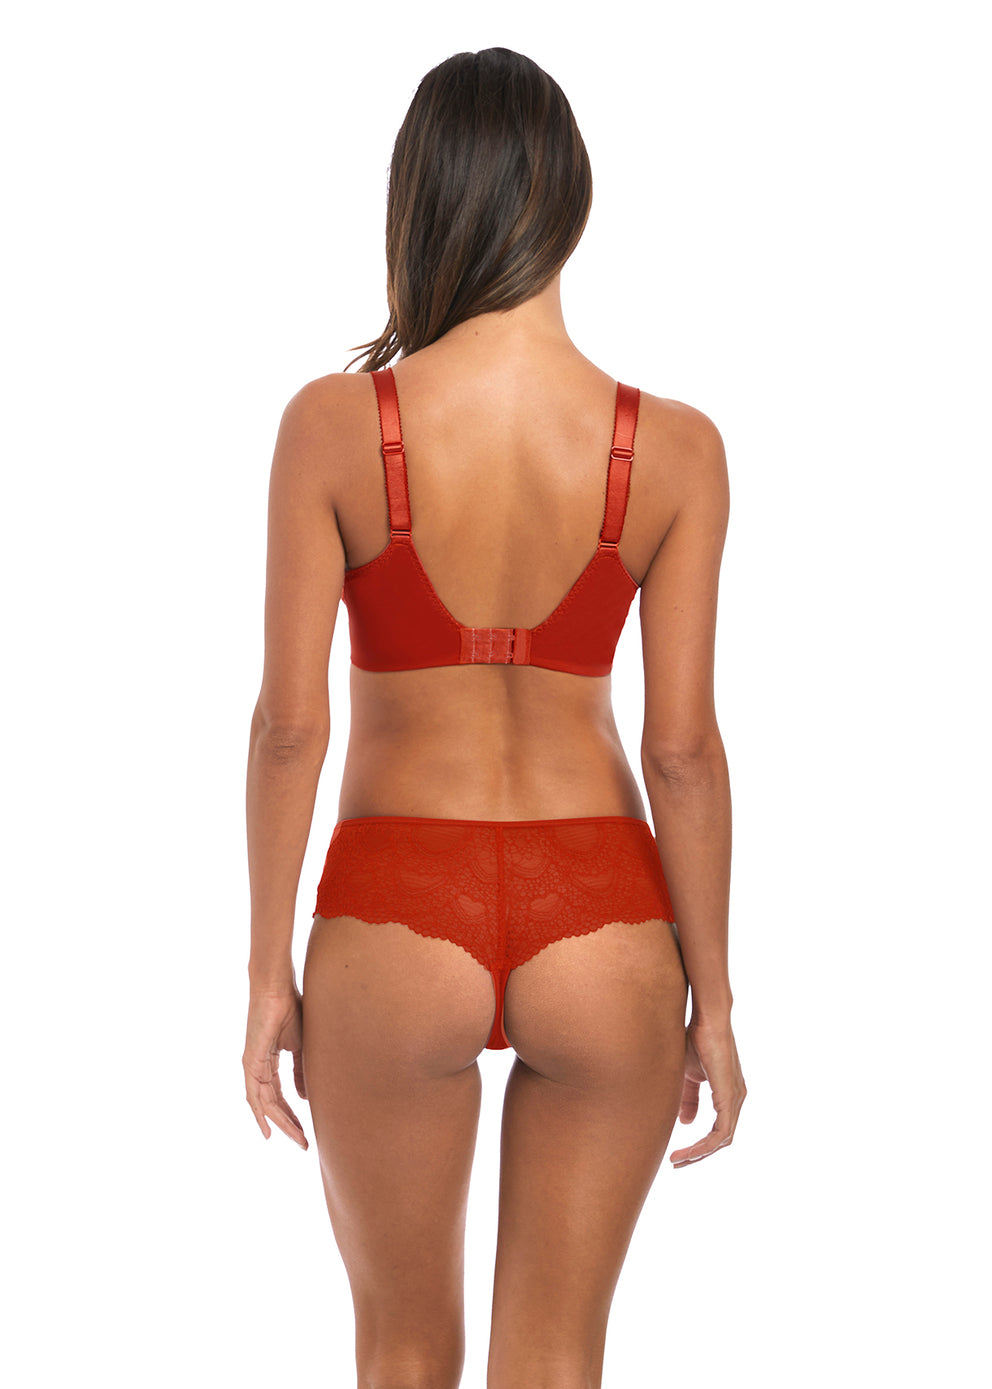 FL2547SAN Twilight Brazilian Thong |SAFFRON|